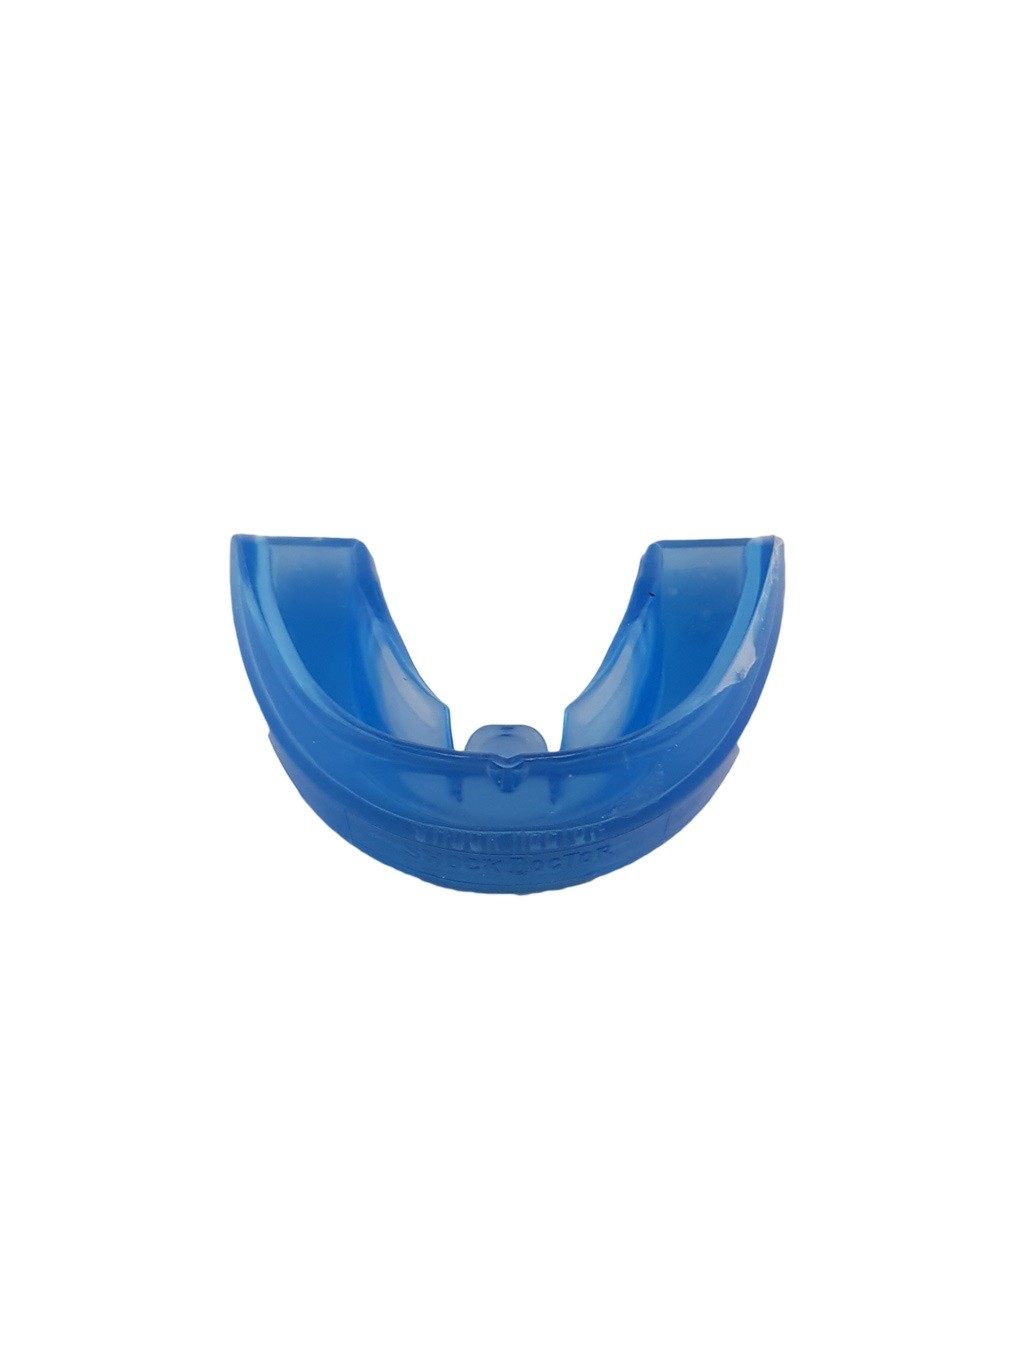 HOKEJAM.LV Adult Mouth Guards